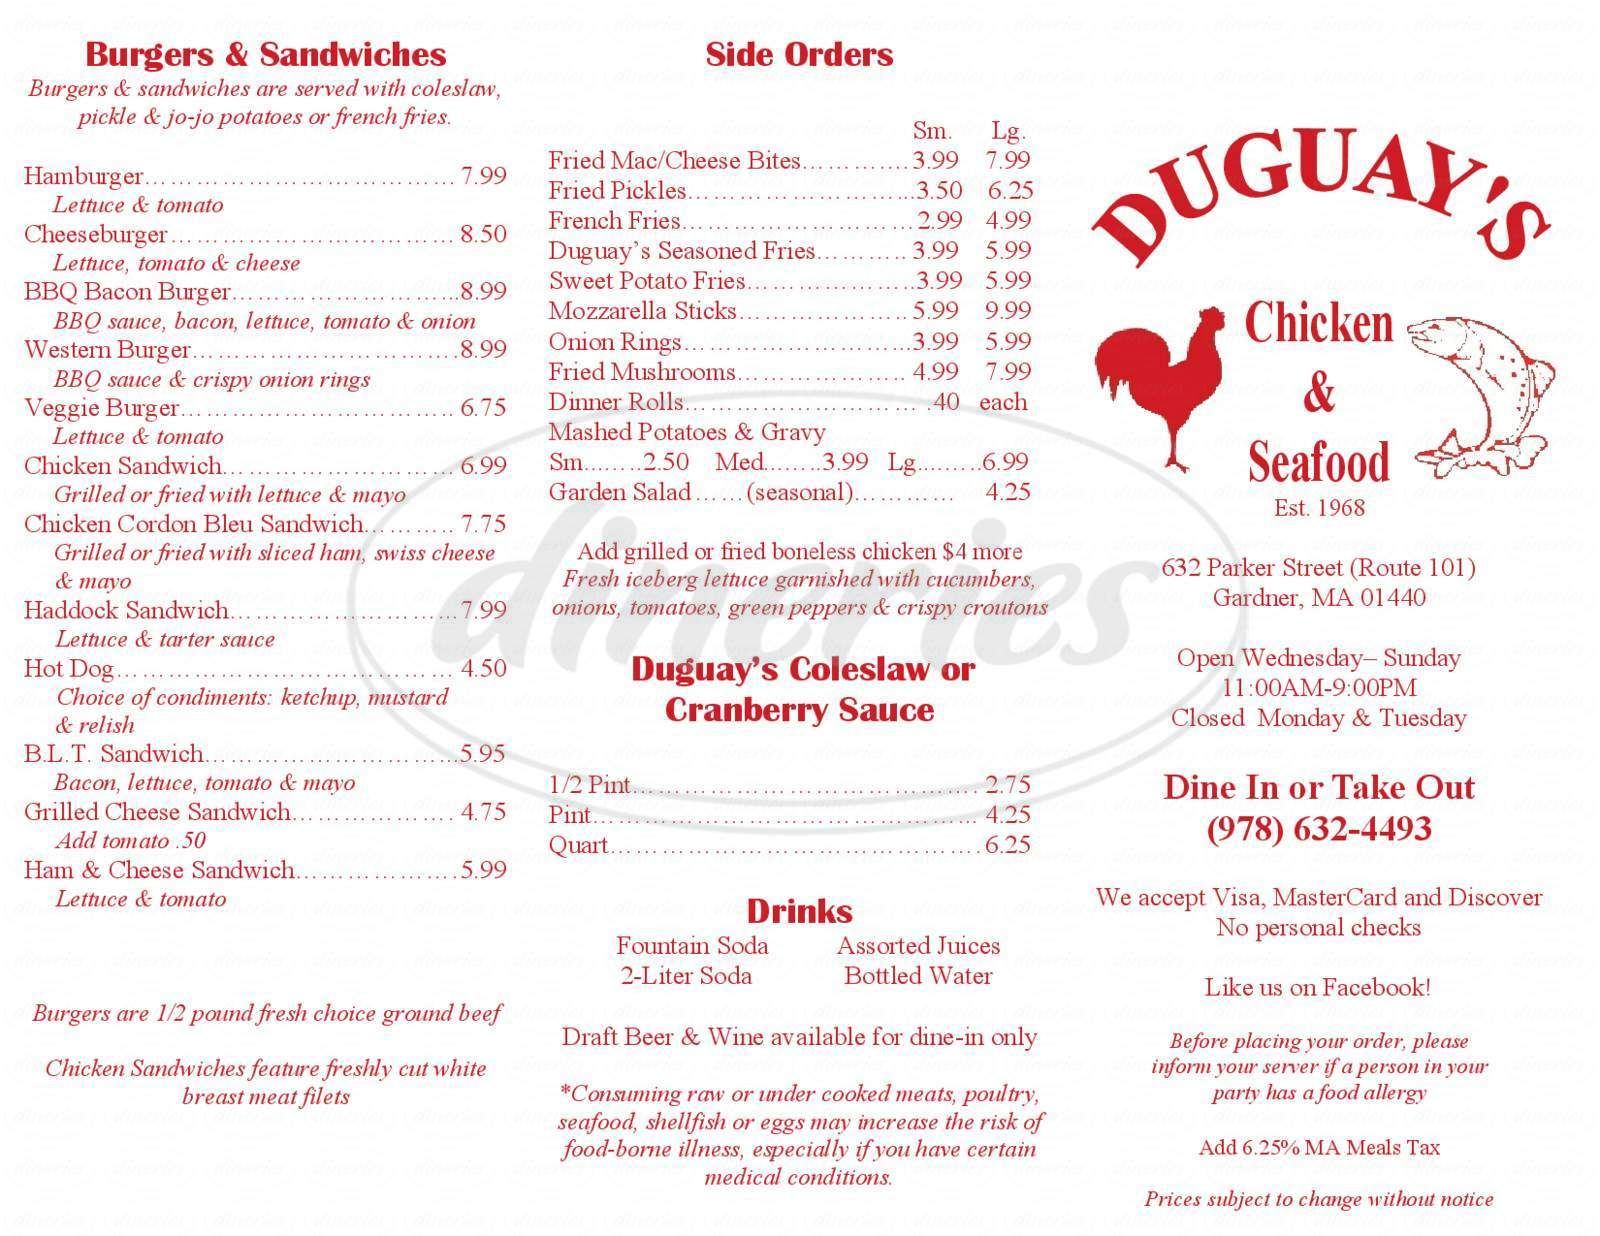 menu for Duguays Fried Chicken & Seafood